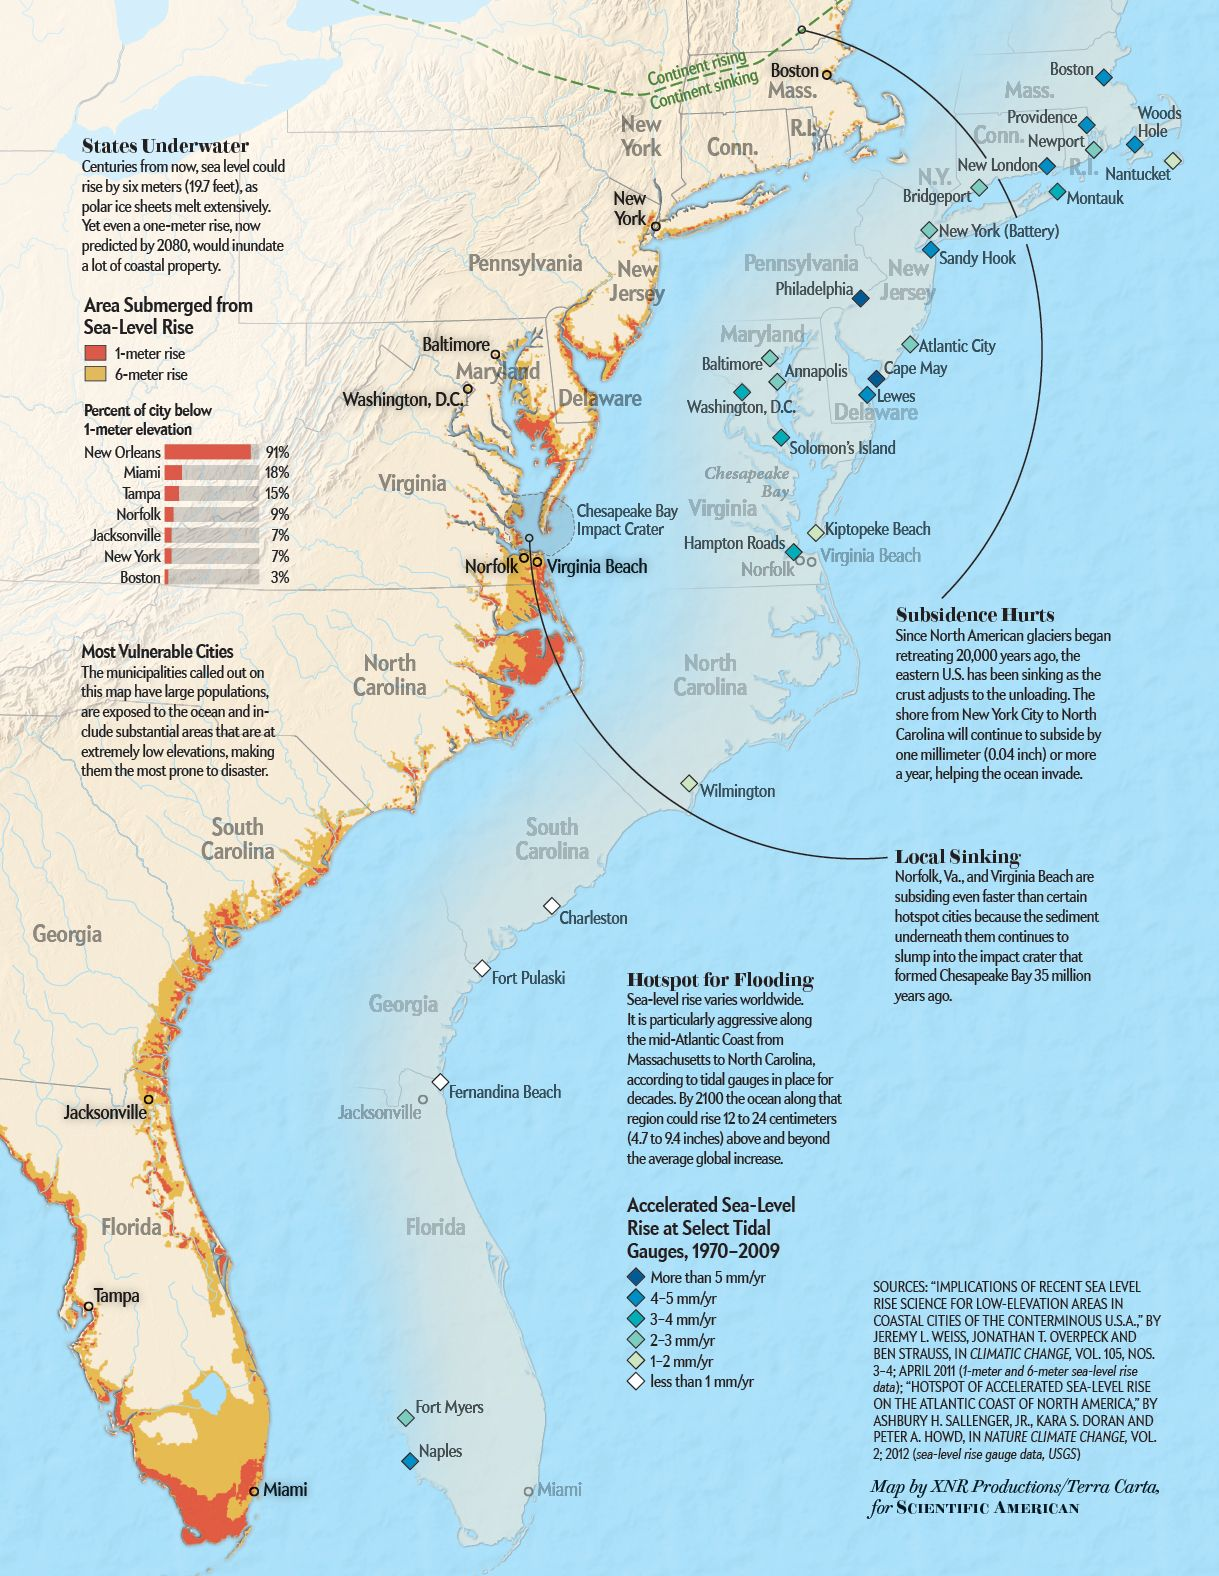 East Coast Is Extremely Vulnerable to Hurricane Flooding